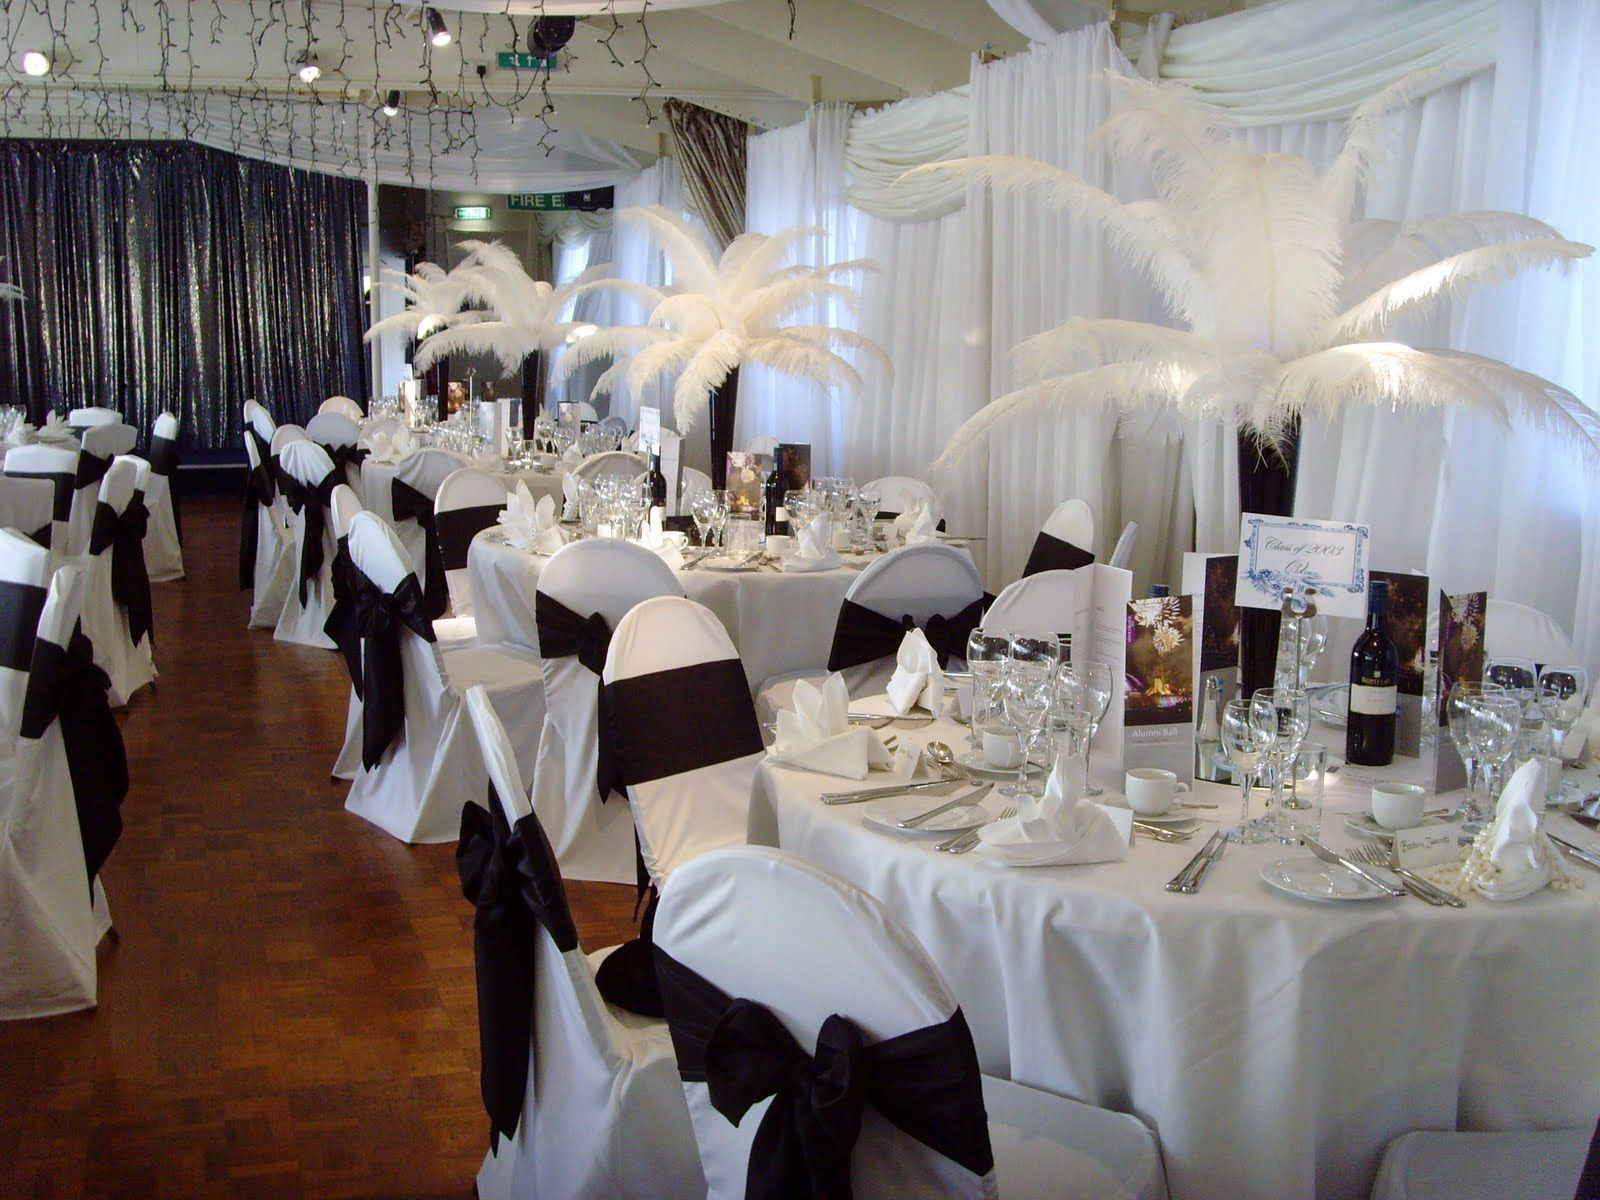 Wedding head table decoration ideas the best wedding for Small table decorations for weddings